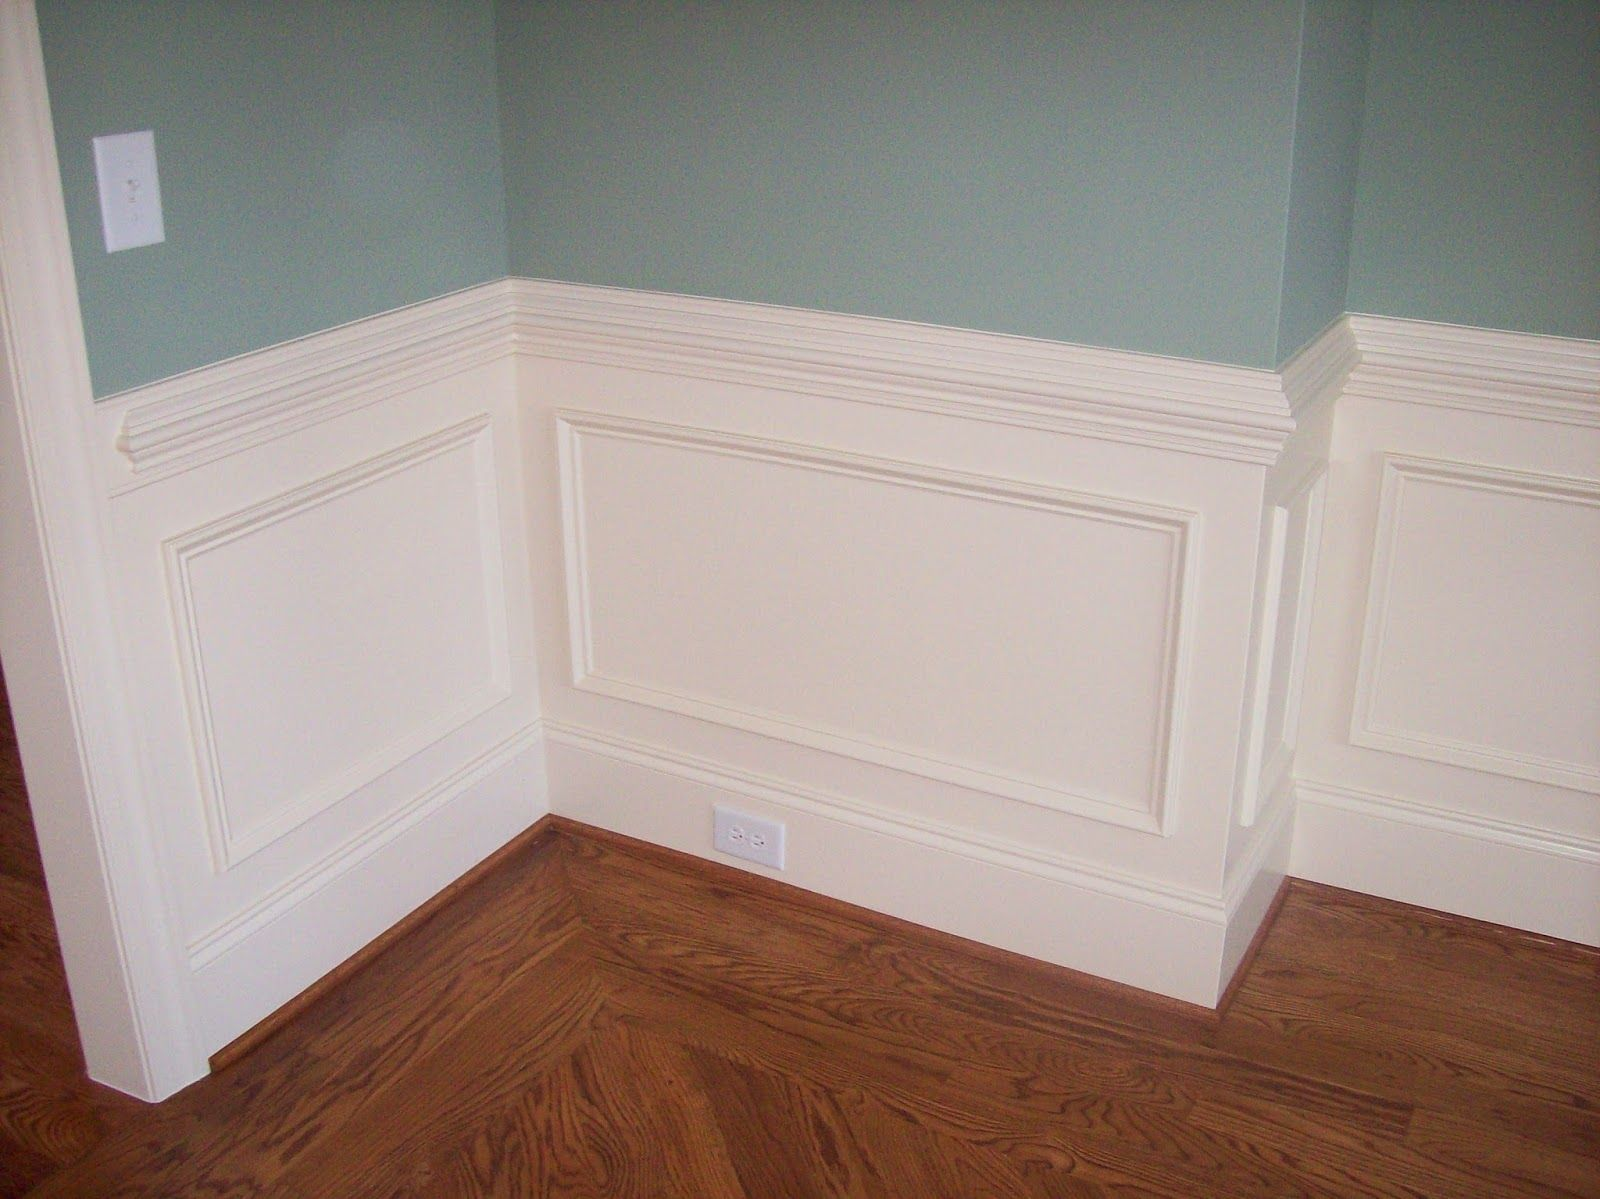 Di diy wainscoting dining room - Illustration Of Wall Panel Adorned With Chair Rail From What Is This Beautiful Room